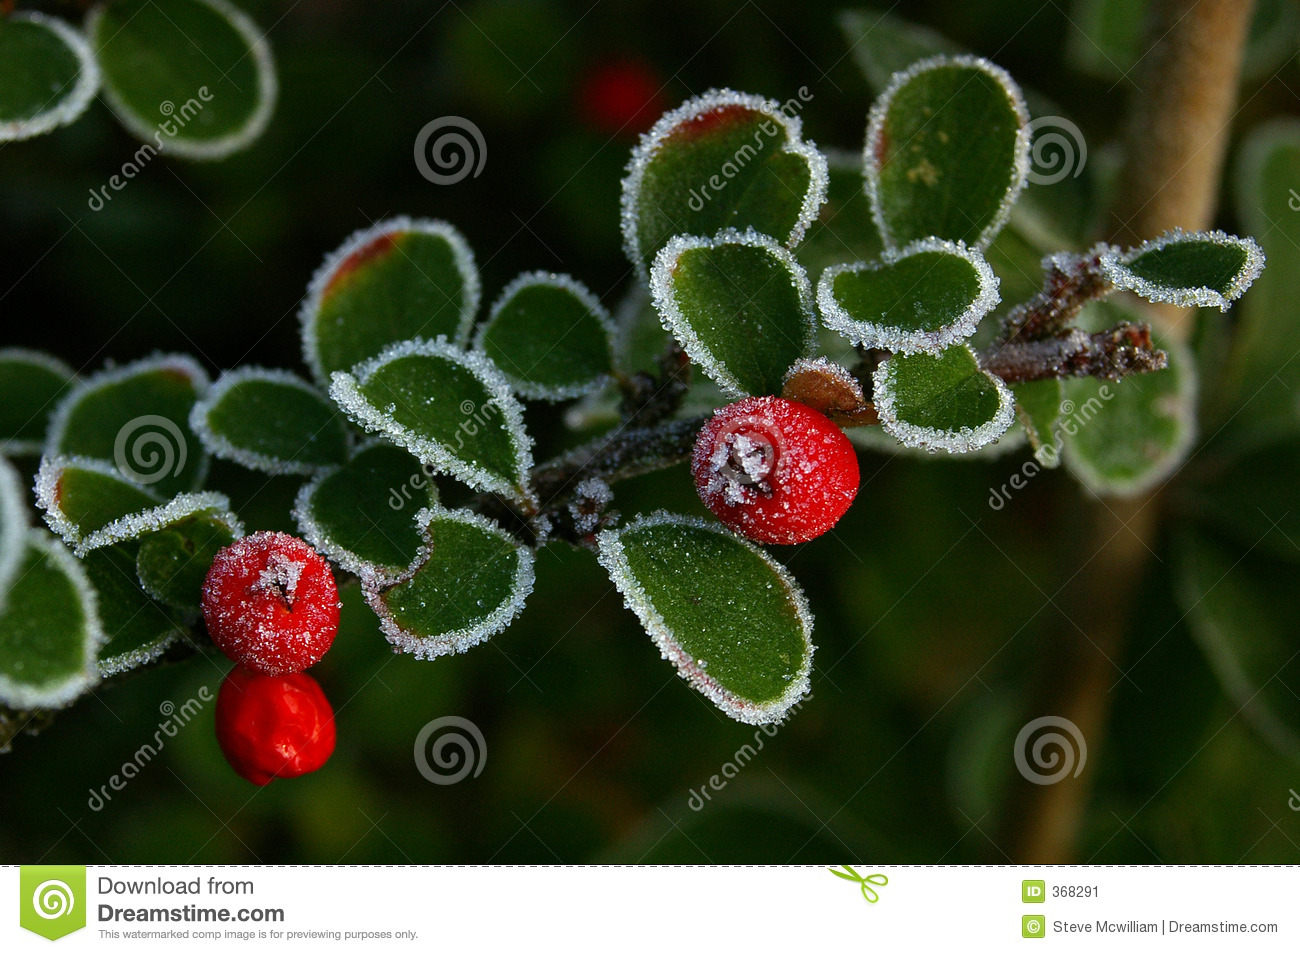 Cotoneaster and Ice 01